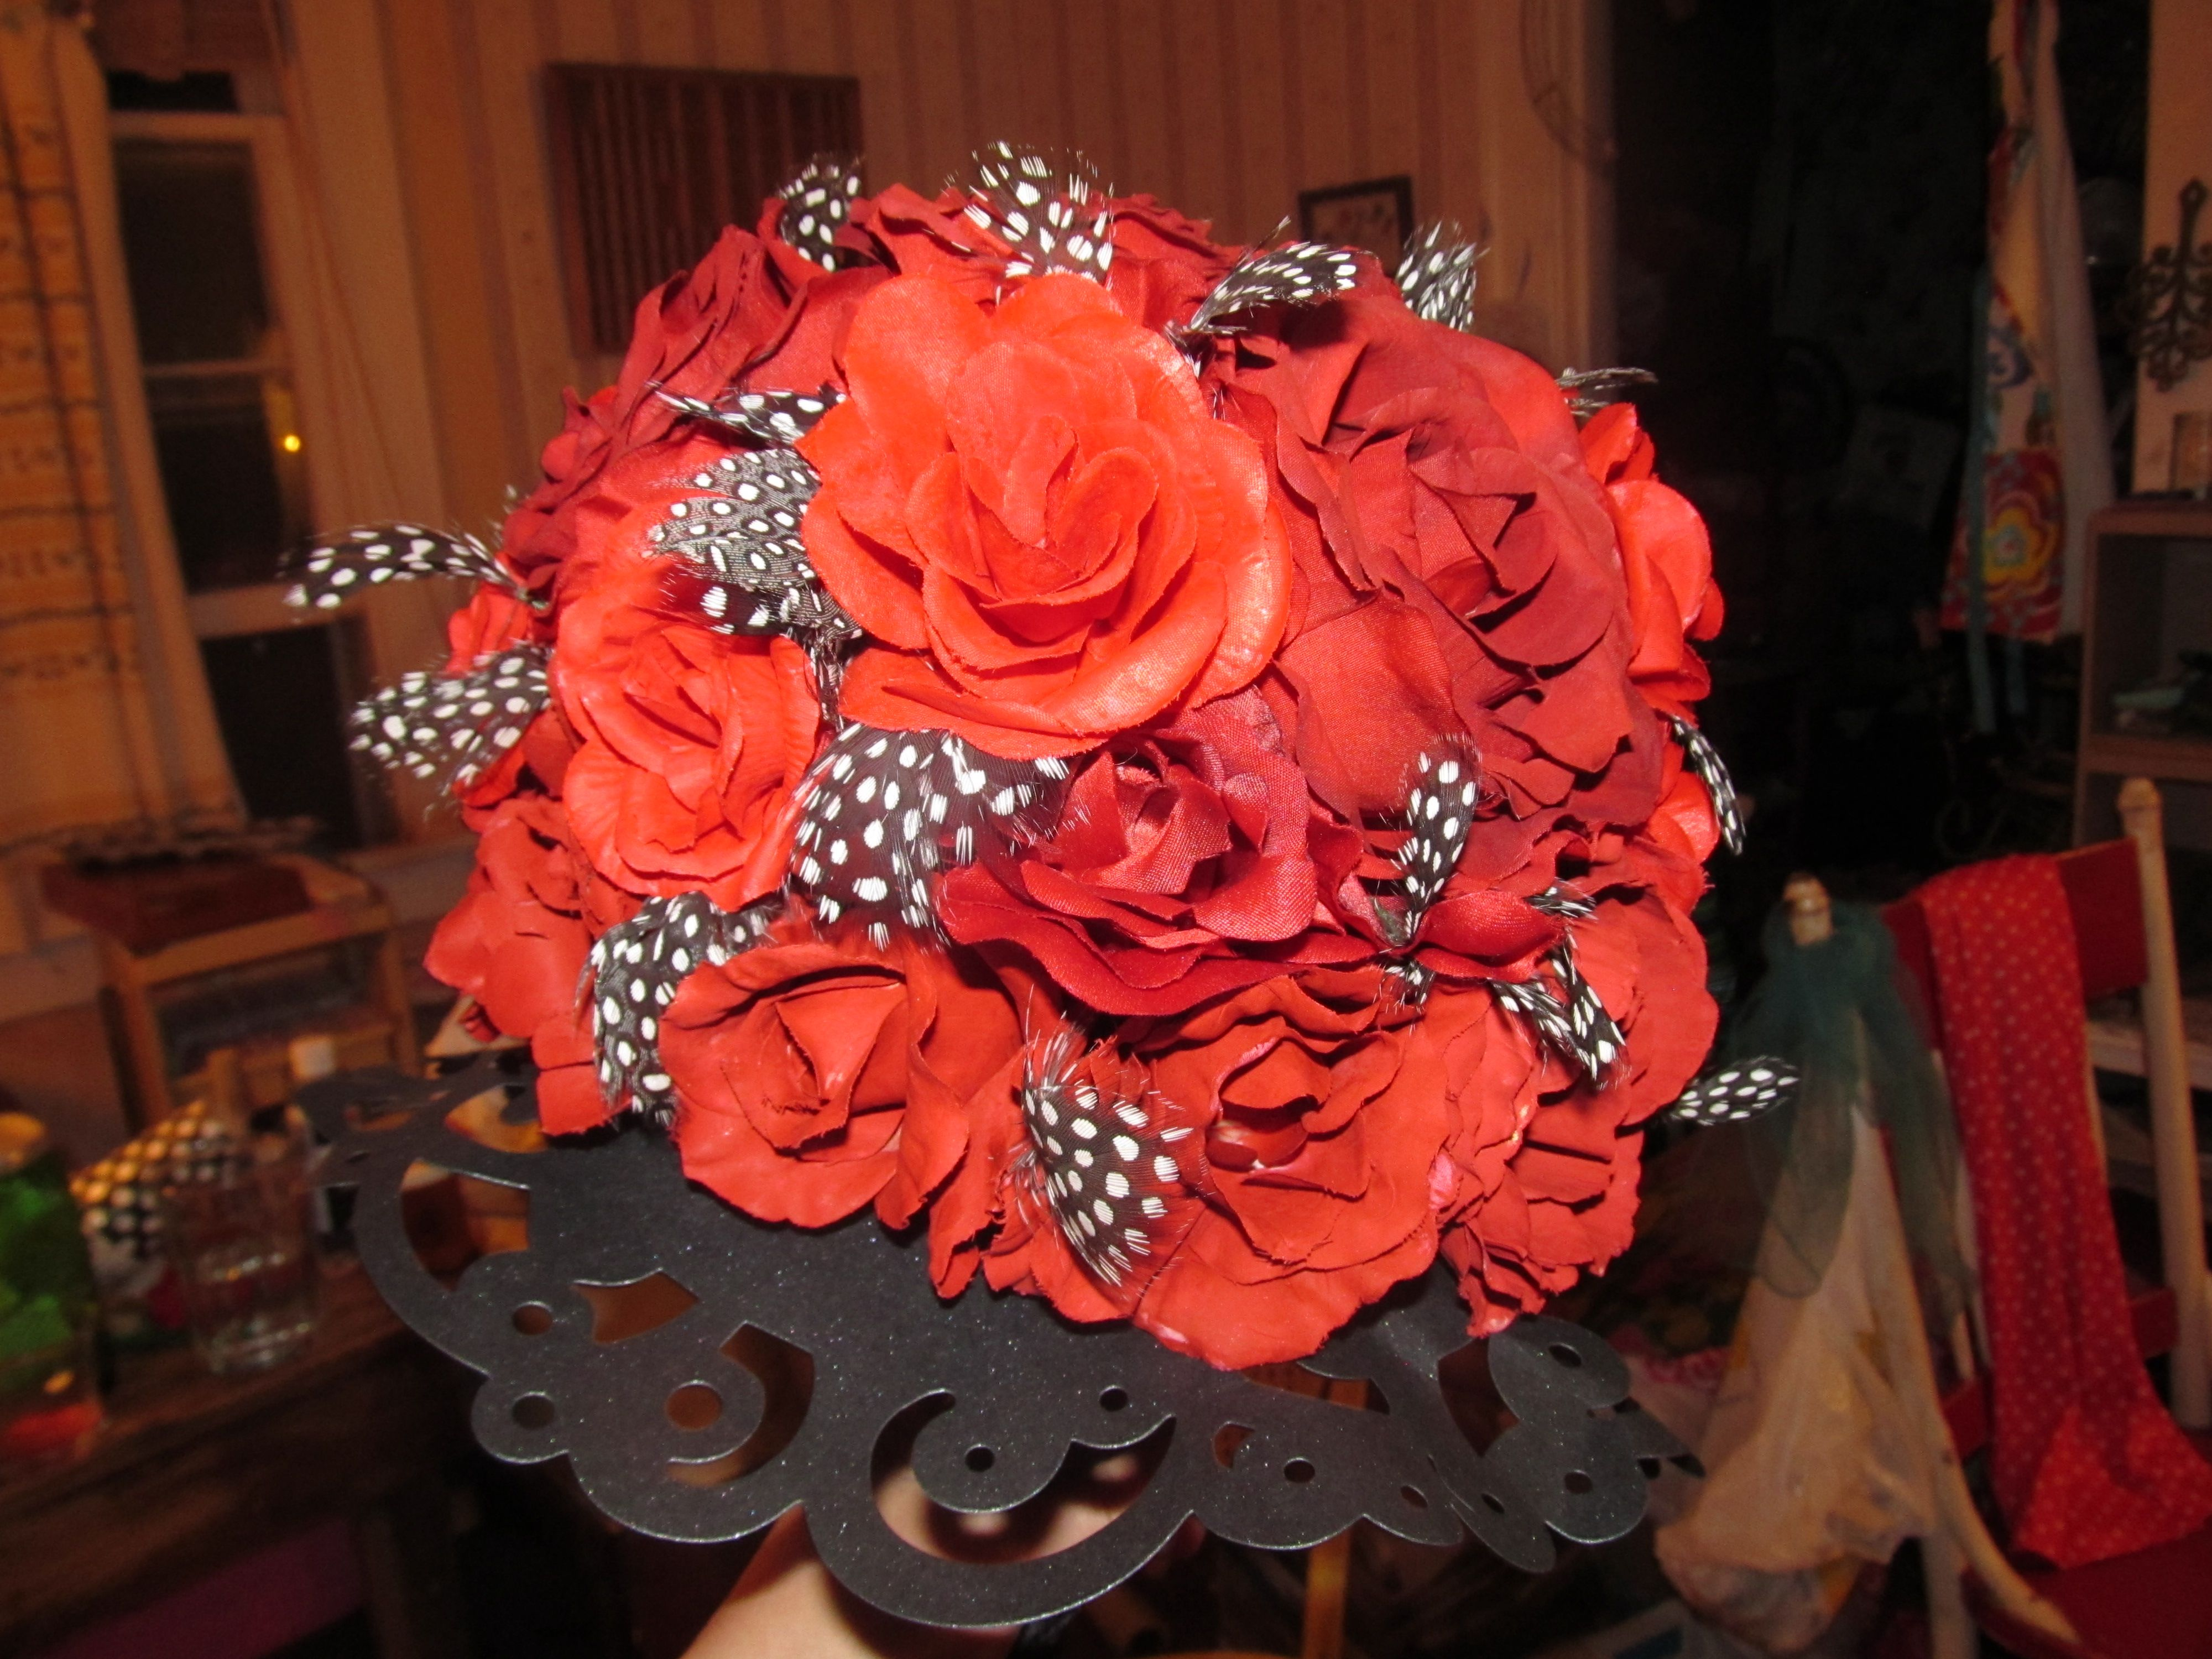 one of the bouquets